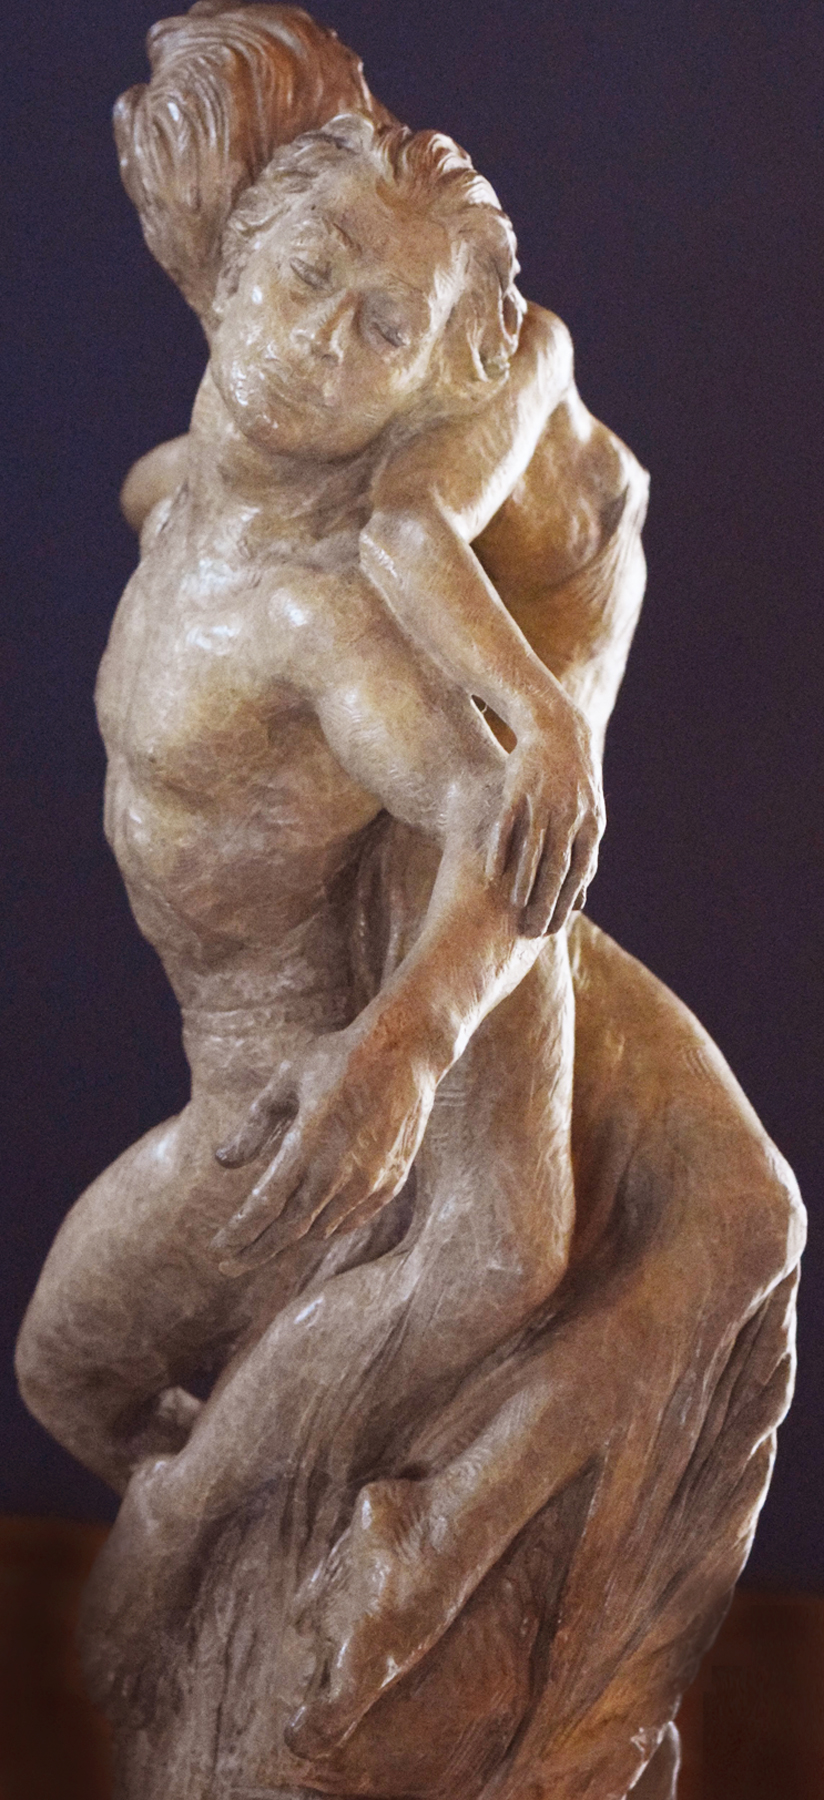 Rapture Bronze Sculpture 1997 37 in